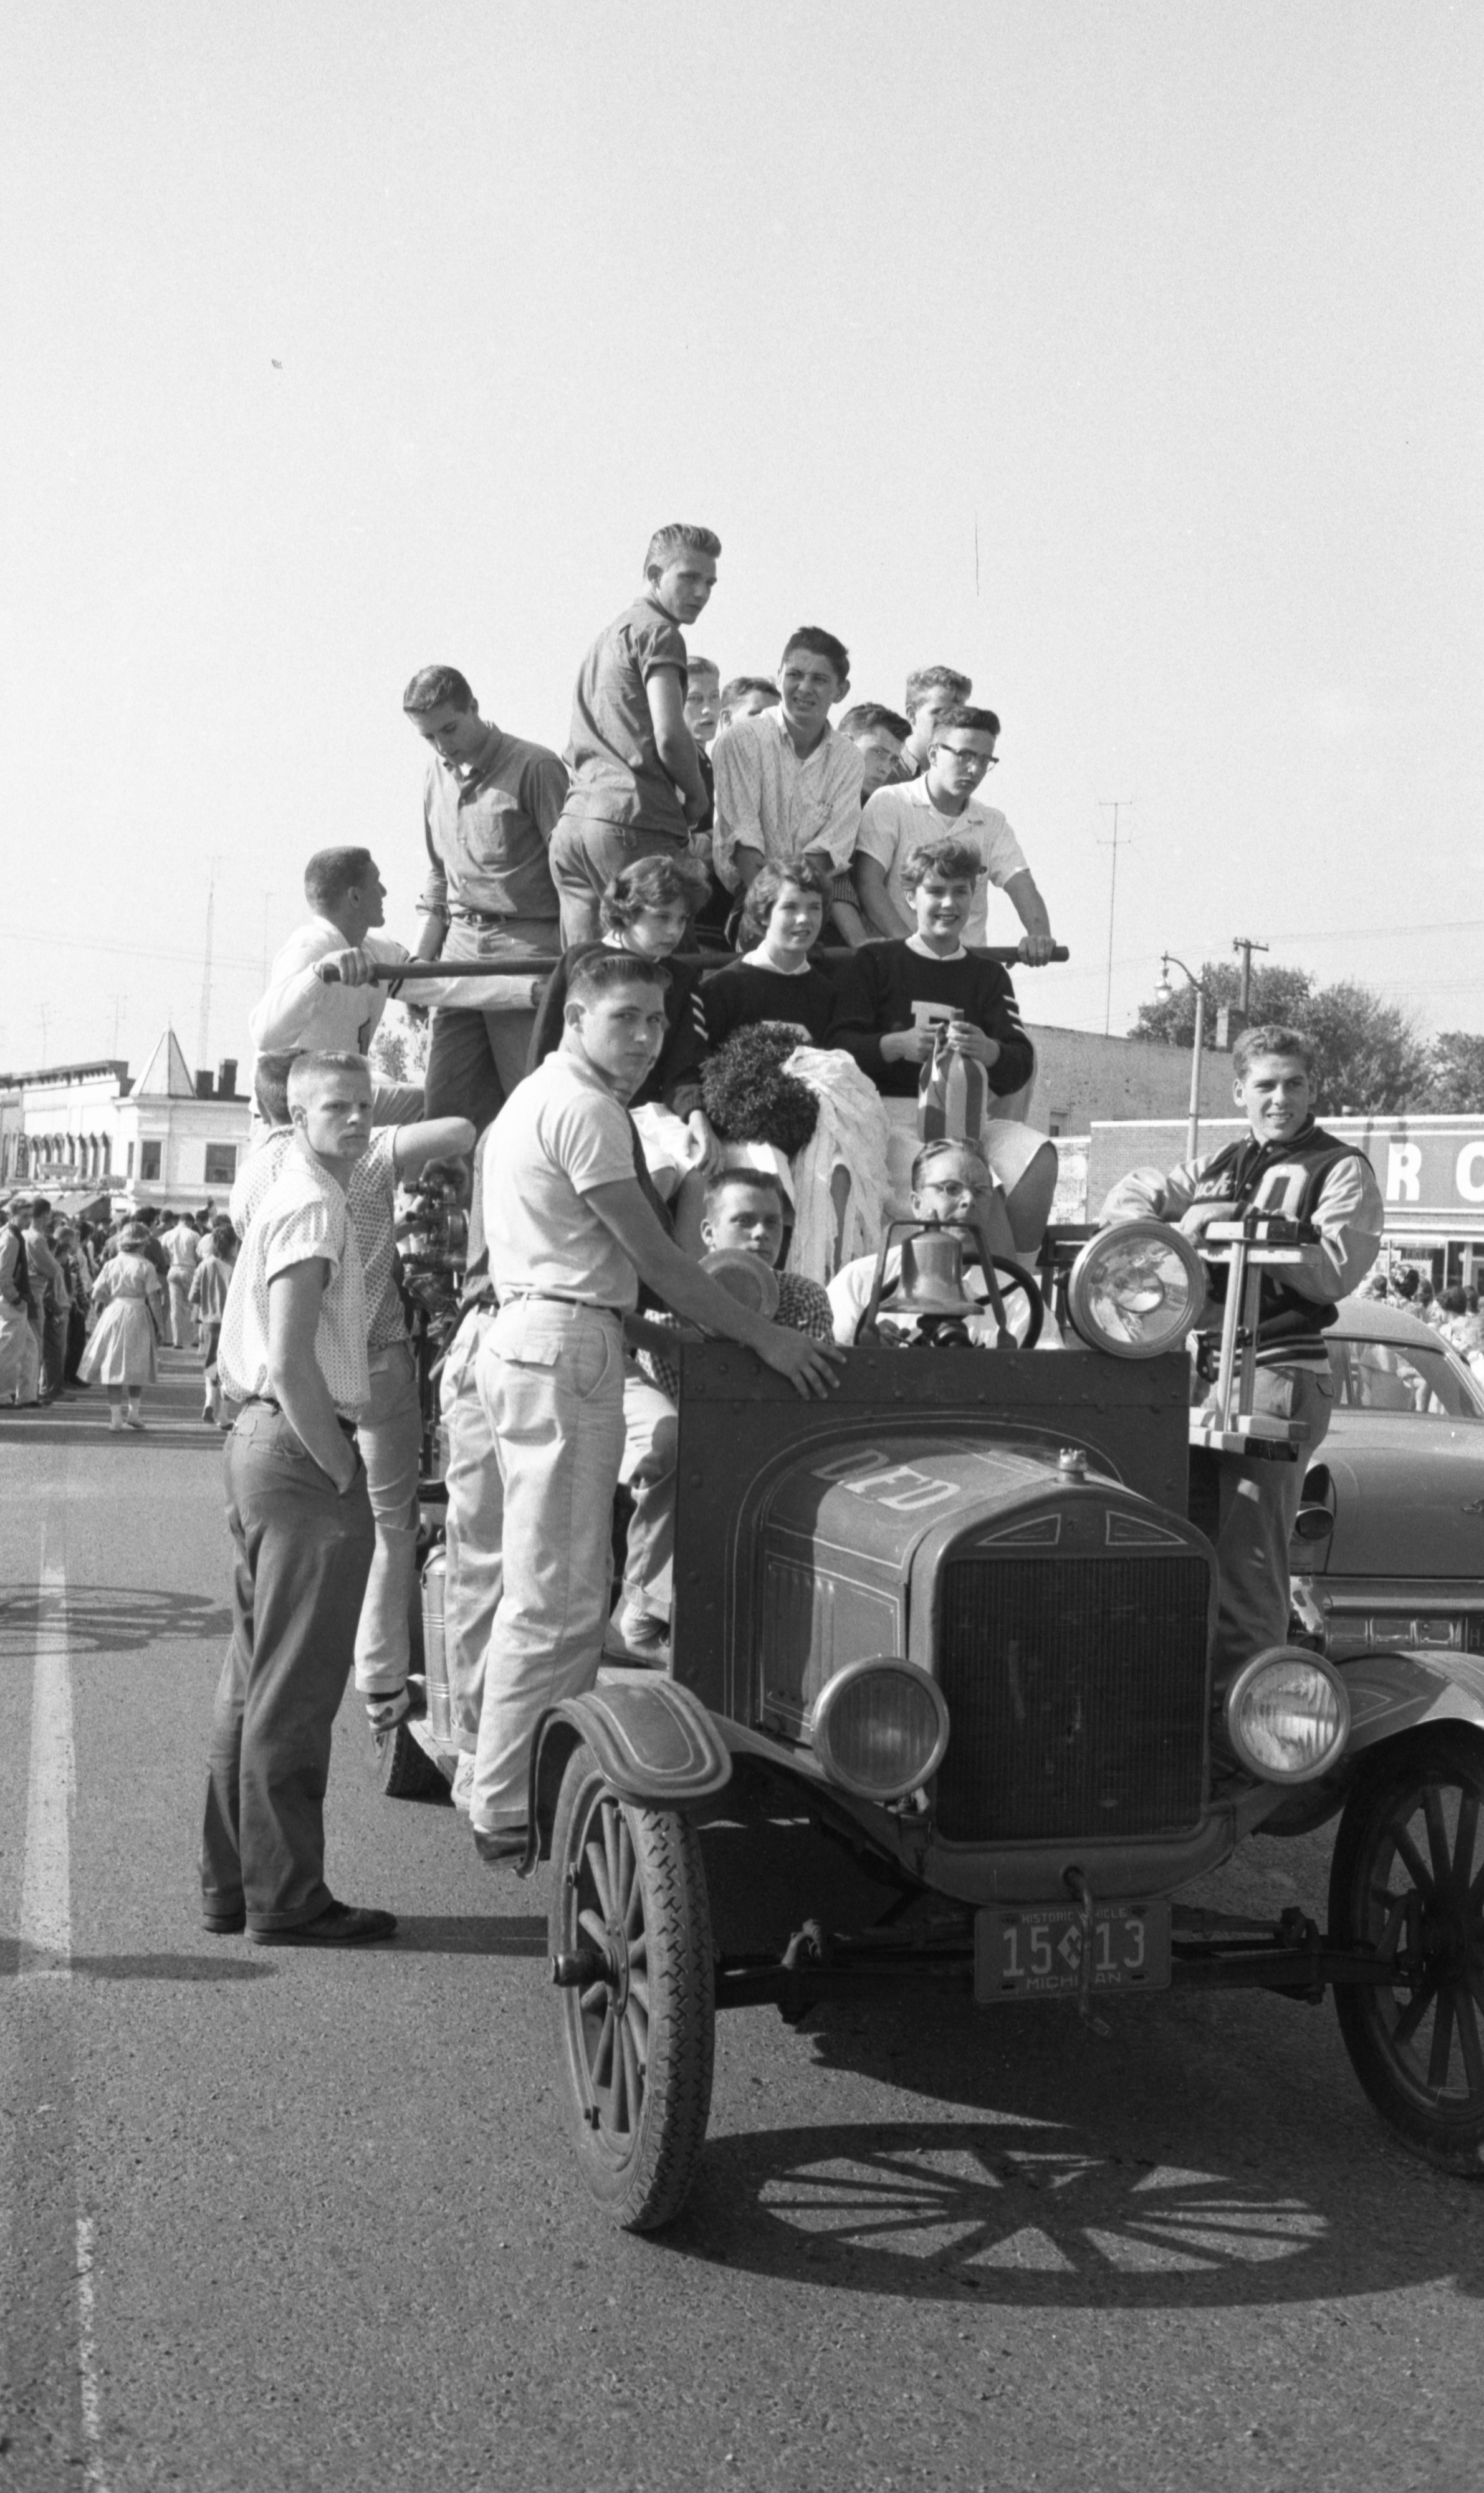 Dexter Students Ride An Old Fire Truck In The Homecoming Parade, October 1959 image